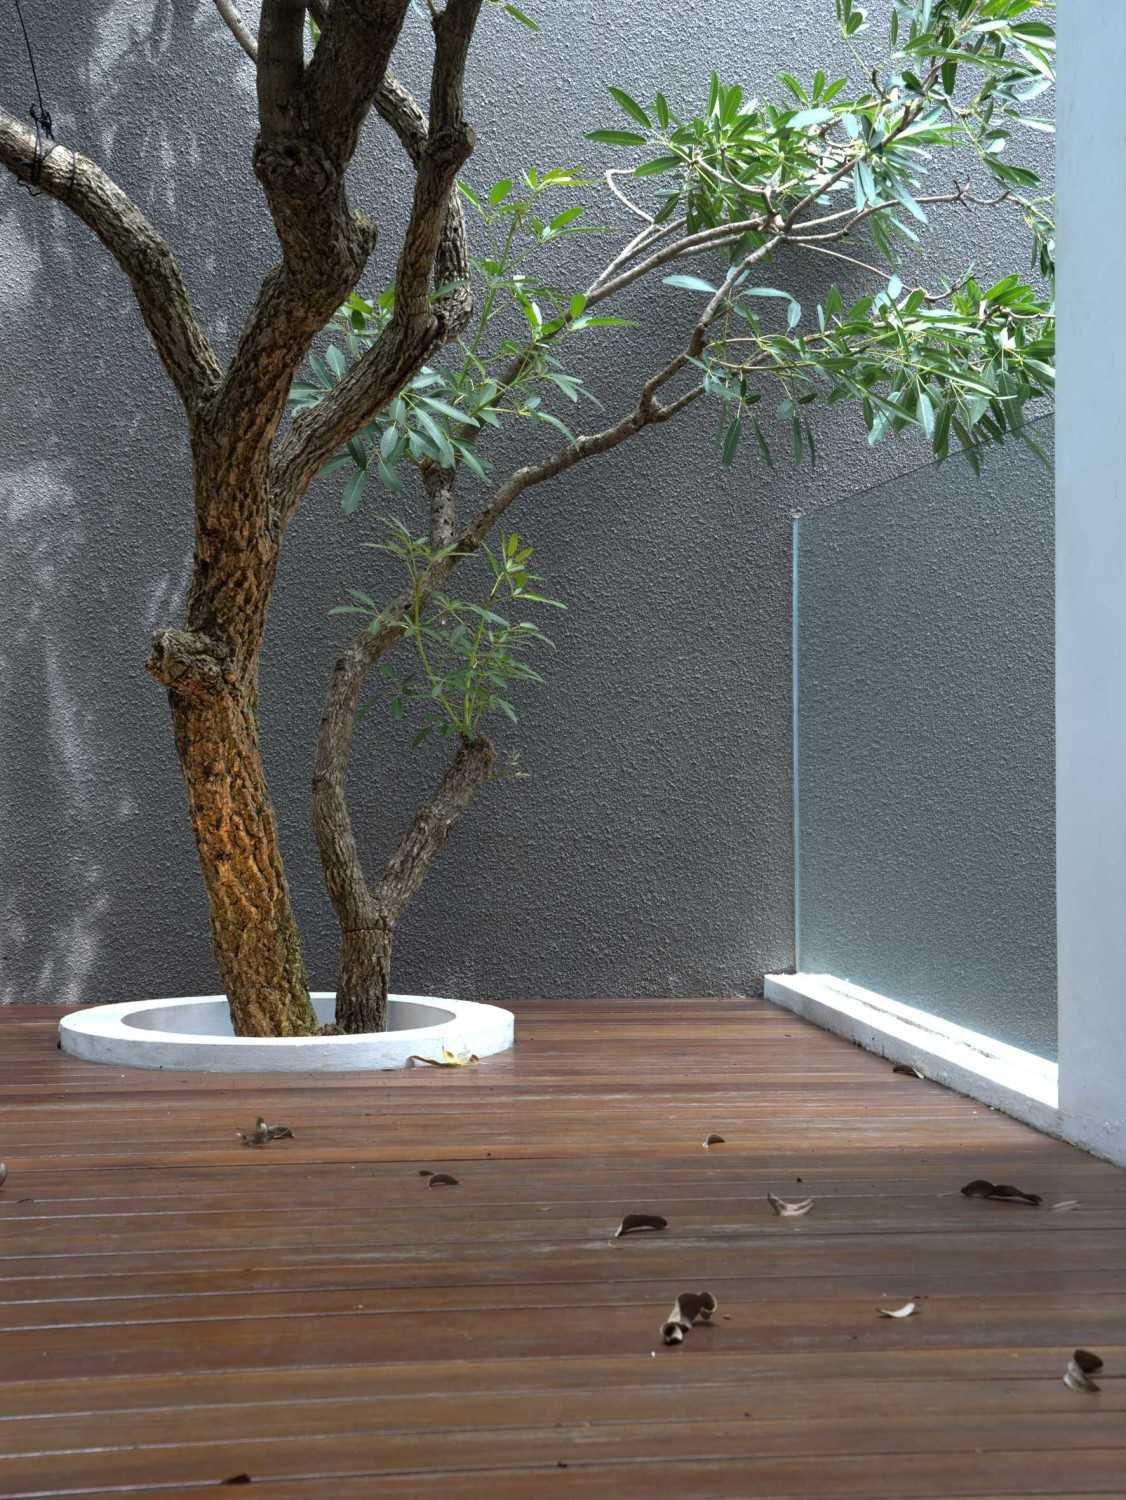 """Simple Projects Architecture """"s"""" House Pakuwon Indah, Surabaya - Indonesia Pakuwon Indah, Surabaya - Indonesia Courtyard  32976"""